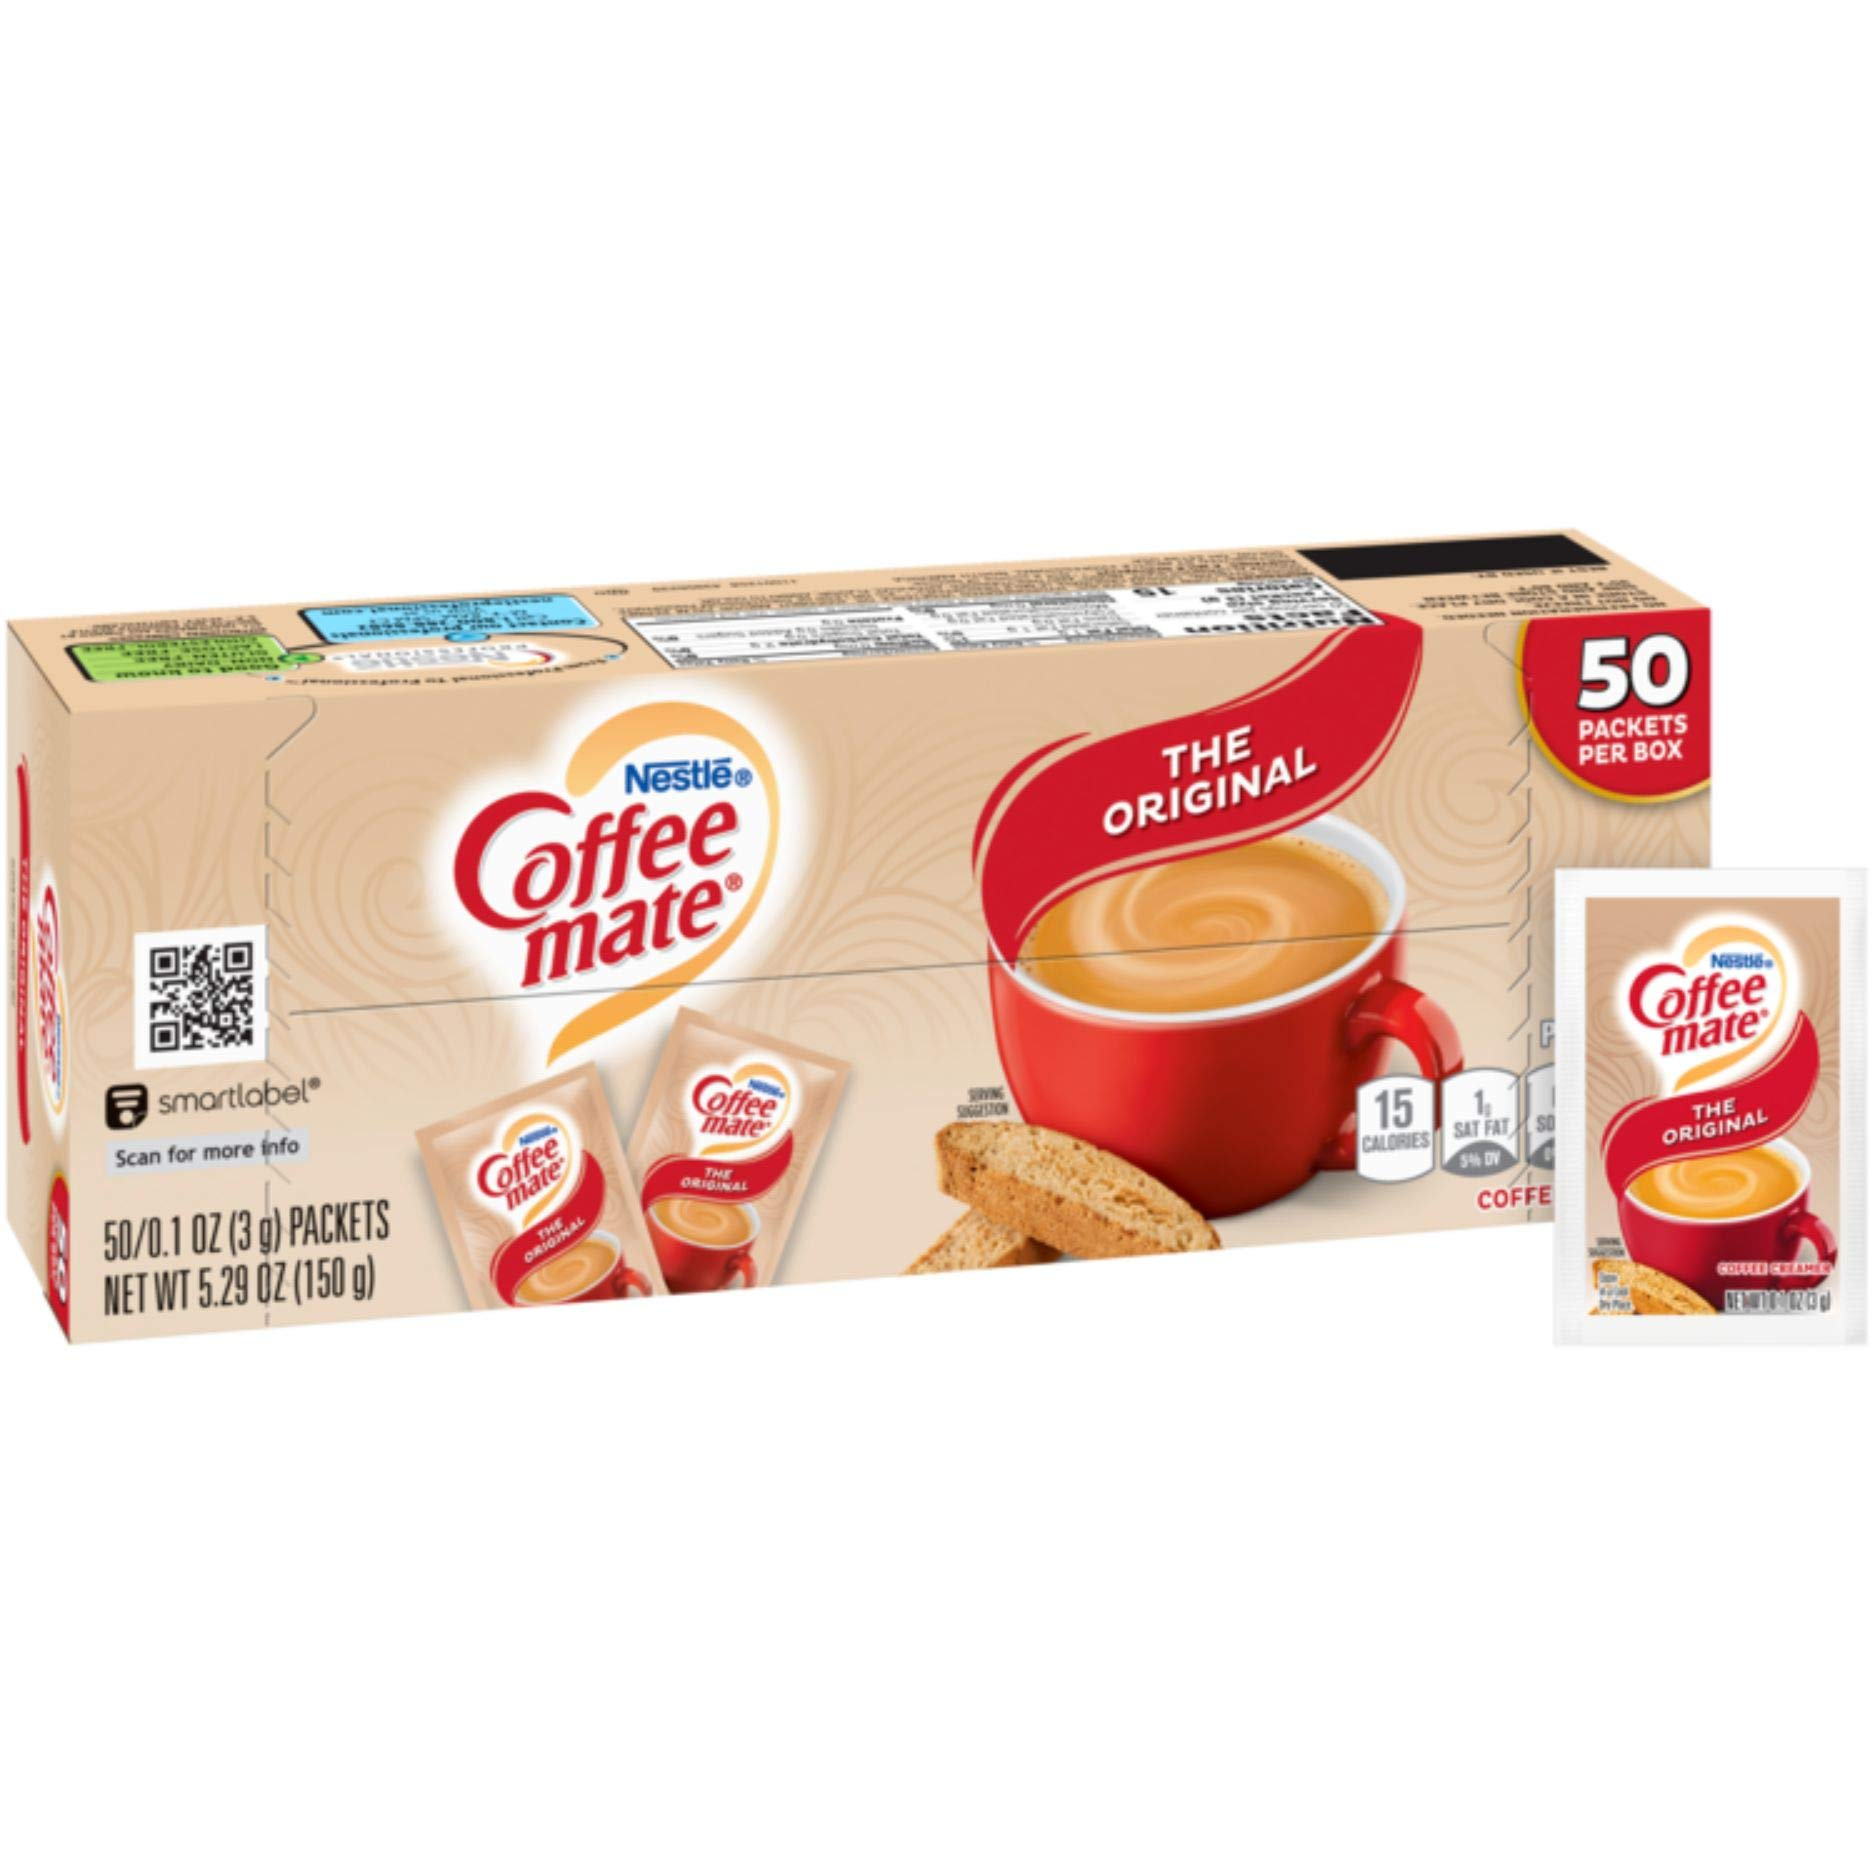 Nestle Coffee mate Coffee Creamer, Original, Powder Creamer, 3g Packets, Box of 50 Packets